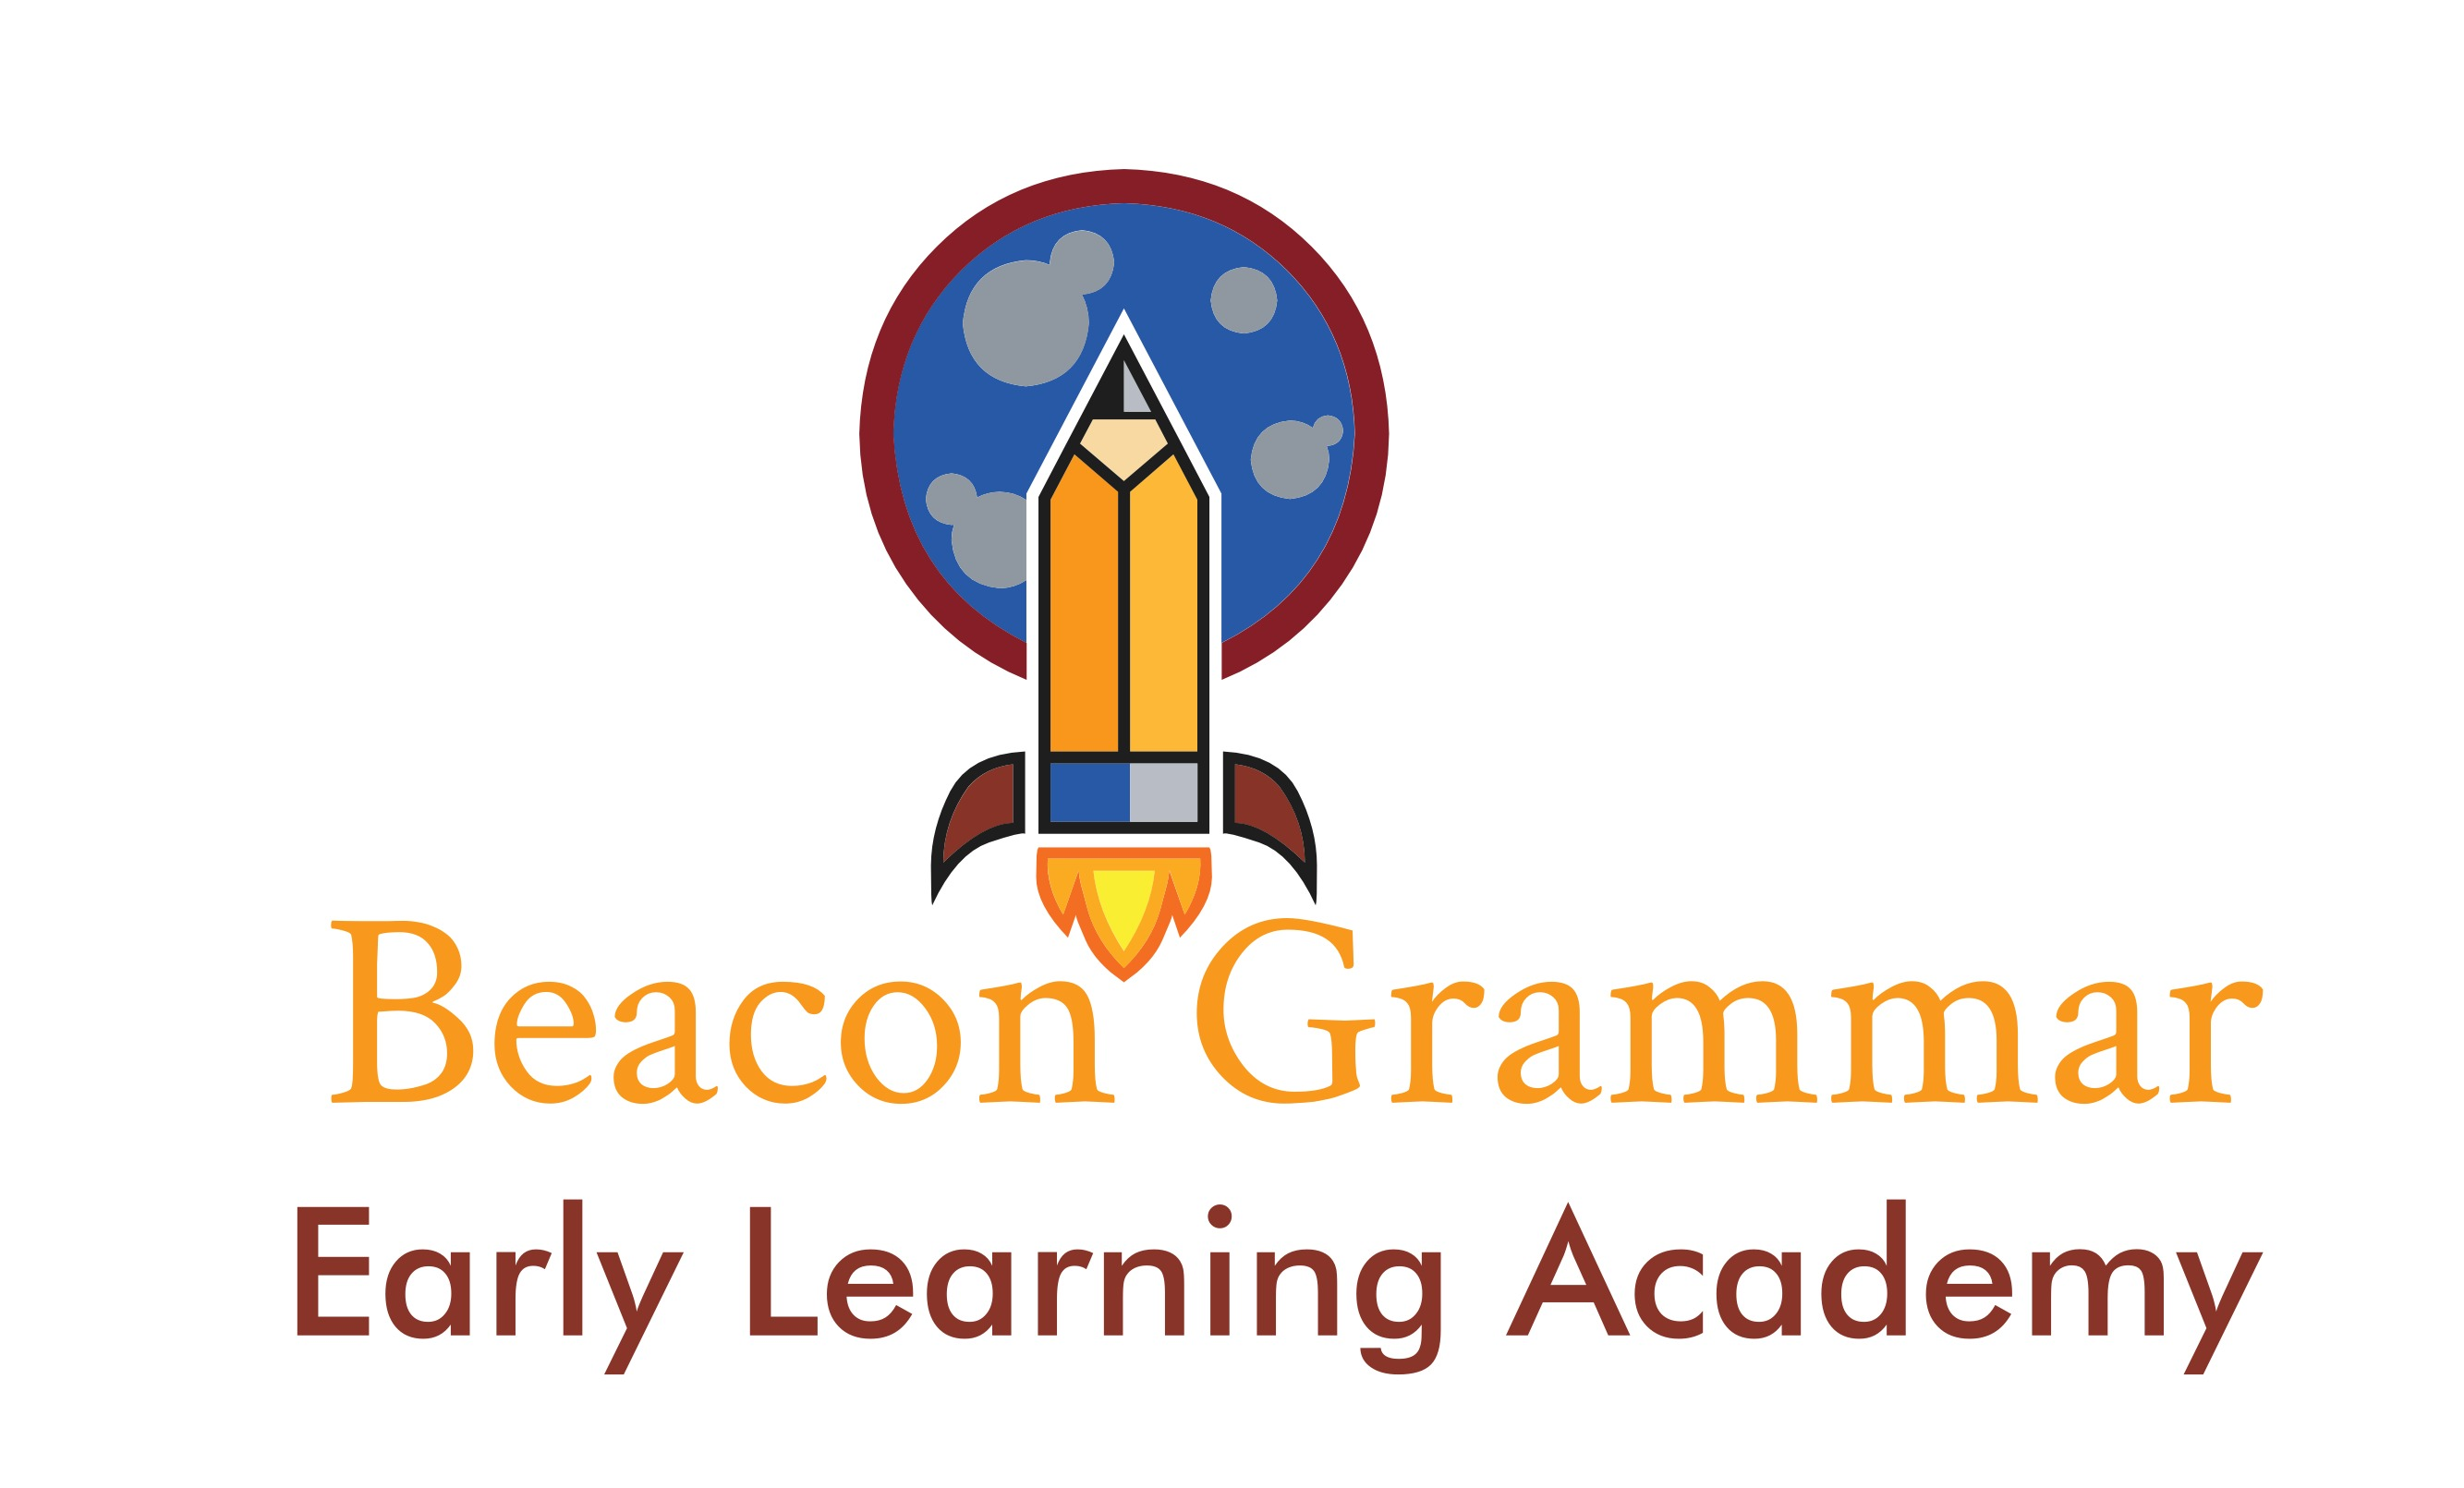 Beacon Grammar Early Learning Academy